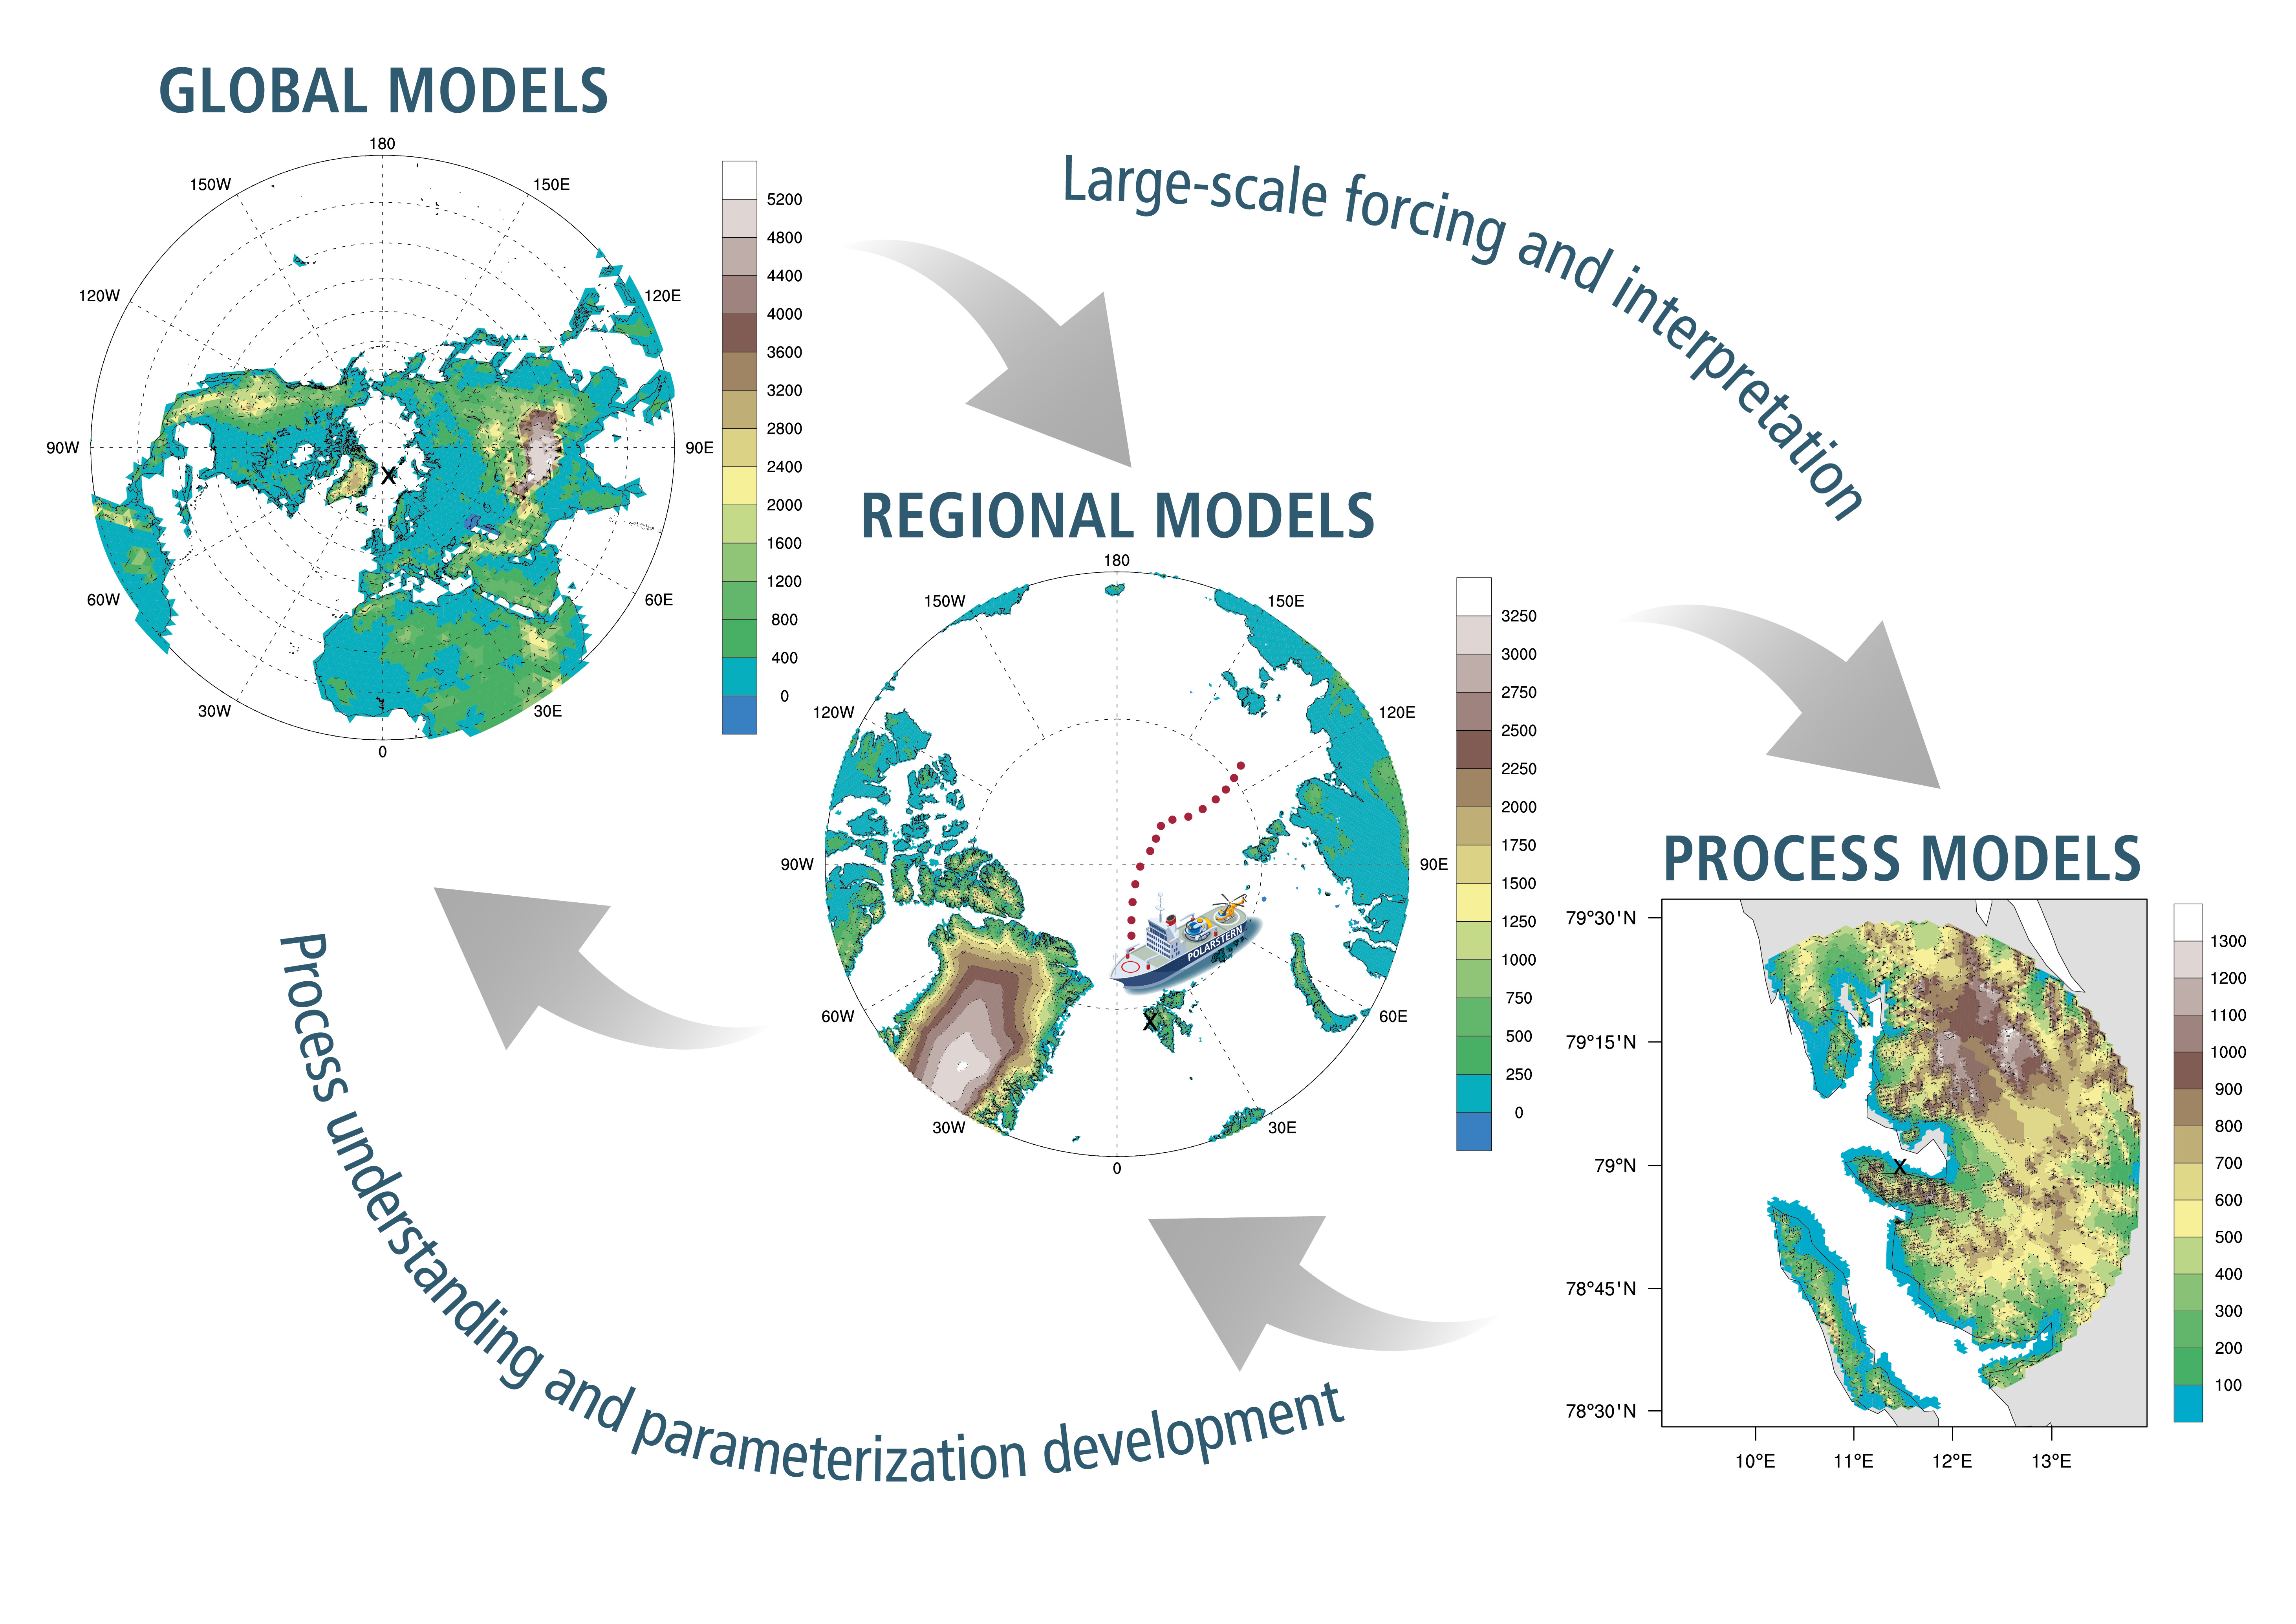 llustration of the ICON model family used within (AC)³ representing the model strategy and the coverage from global to local scales. Global modelling includes ICON: Icosahedral non–hydrostatic atmospheric general circulation model, ICON–HAM: Coupled climate–aerosol model, ICON–SWIFT: Coupled climate–ozone model, and ICON–O: Icosahedral global ocean model. Regional modelling applies ICON as a nested Limited Area Model (LAM), while on the process level simulations with the ICON-LEM (Large-Eddy Model) will be performed. These ICON family members will be for the first time extensively tested and utilised in the Arctic region.